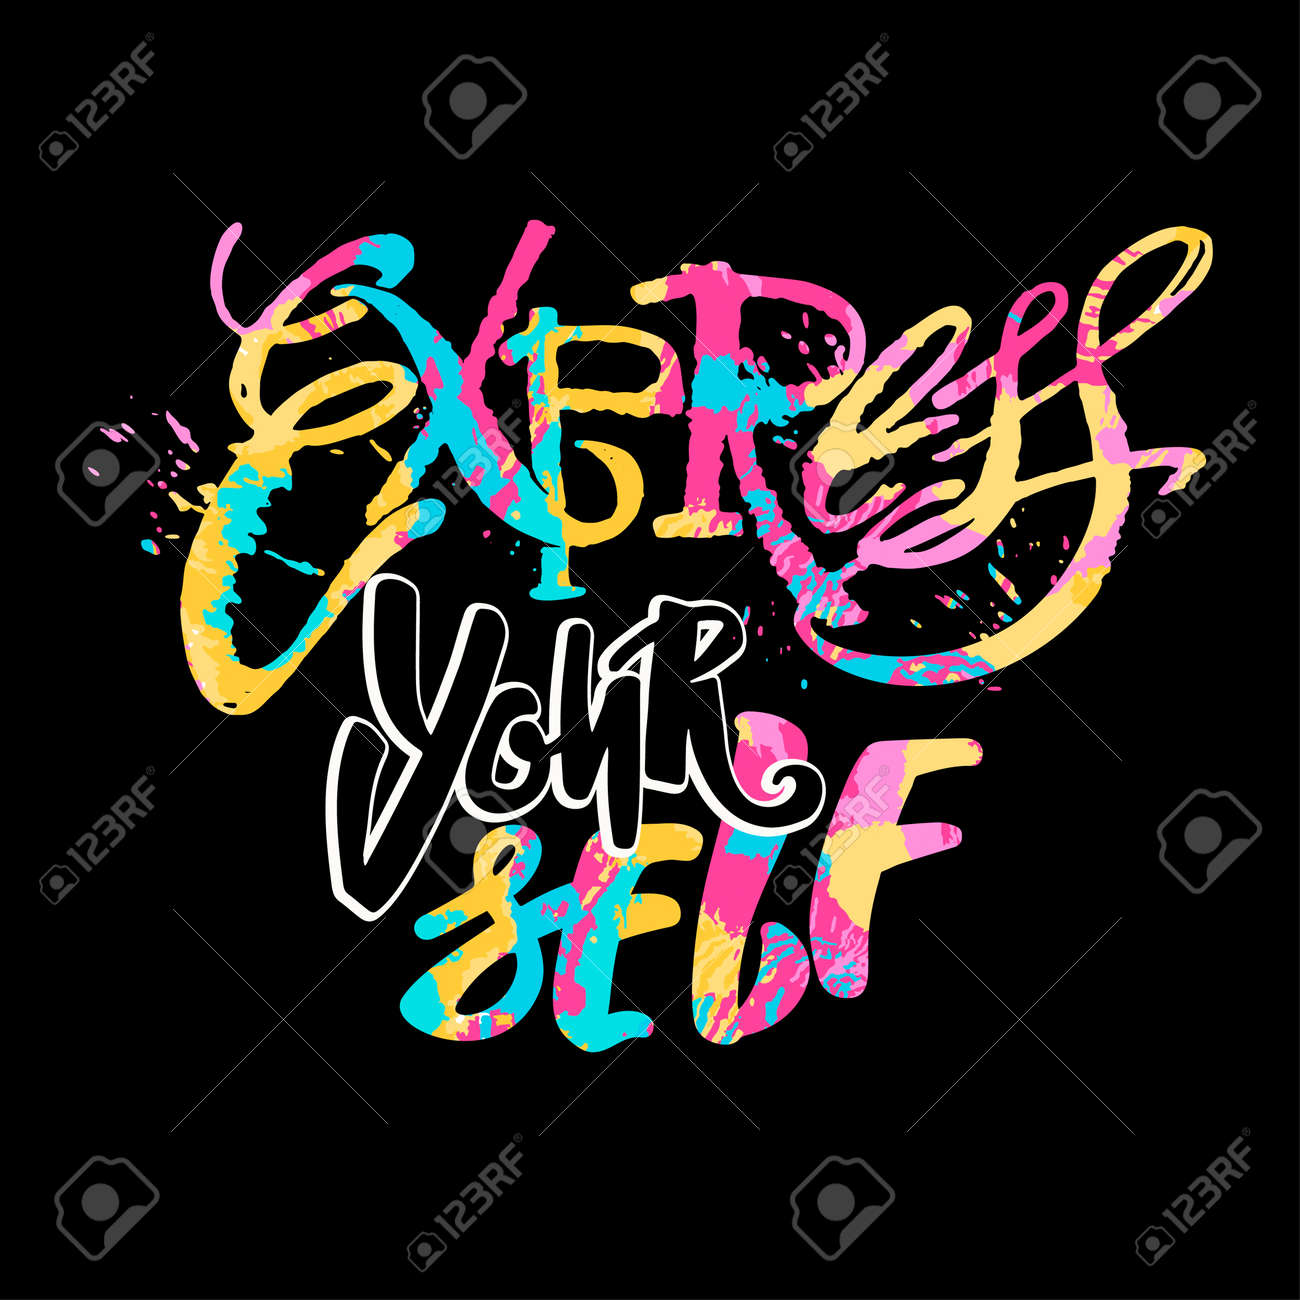 Arte Express Yourself Express Yourself Believe And Do Create Art Motivator Hand Lettering